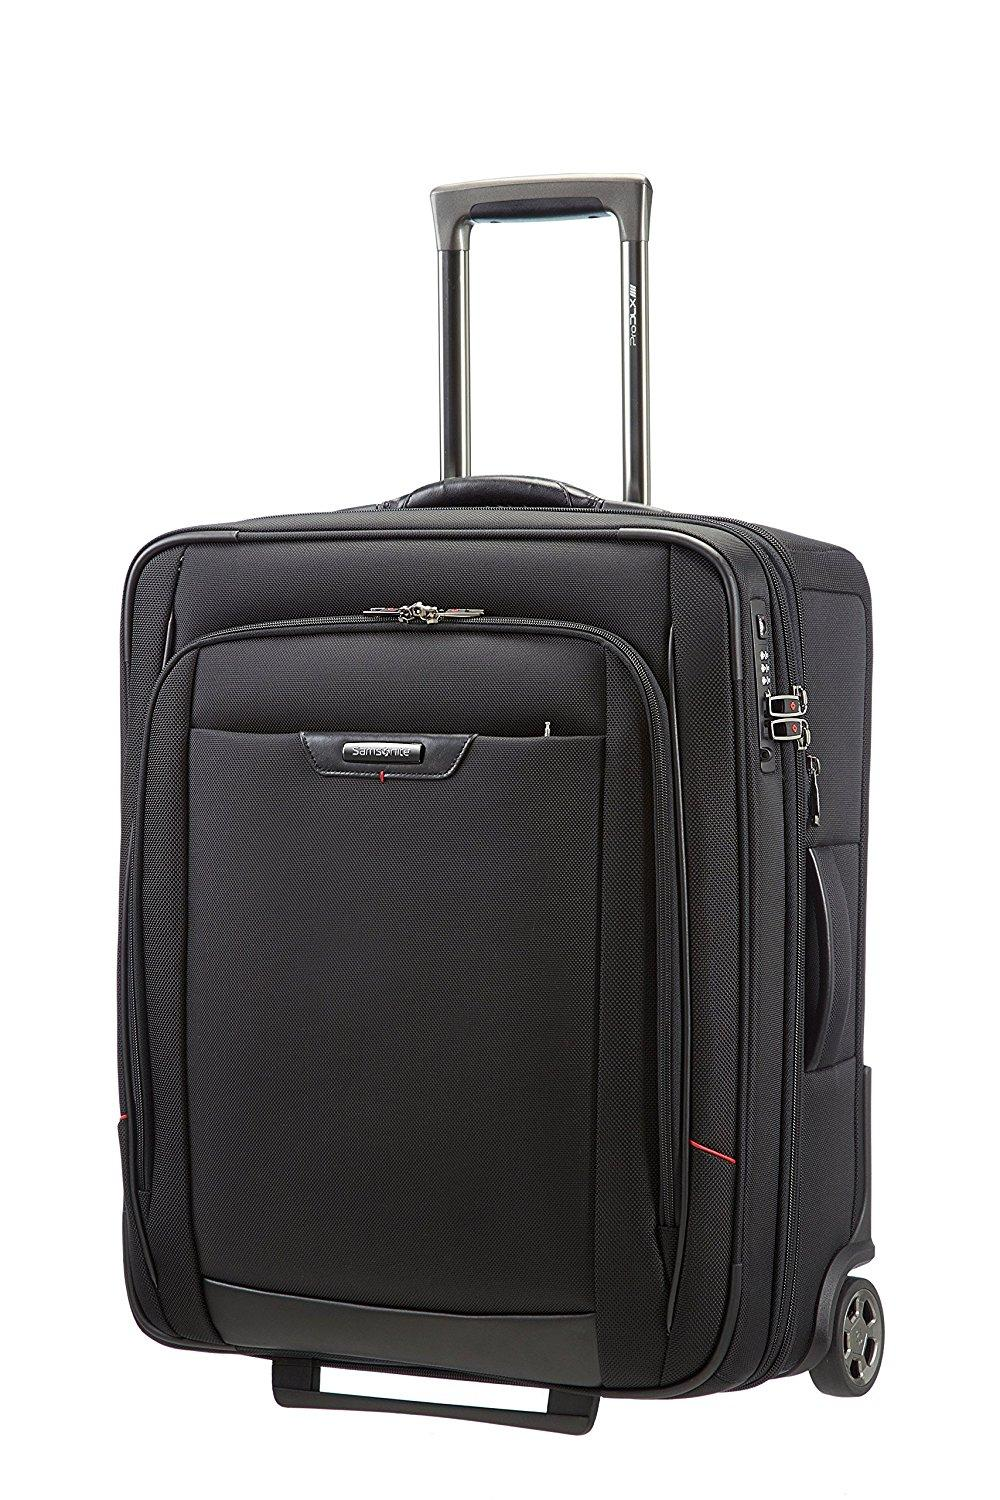 Best Hand Luggage Buying Guide